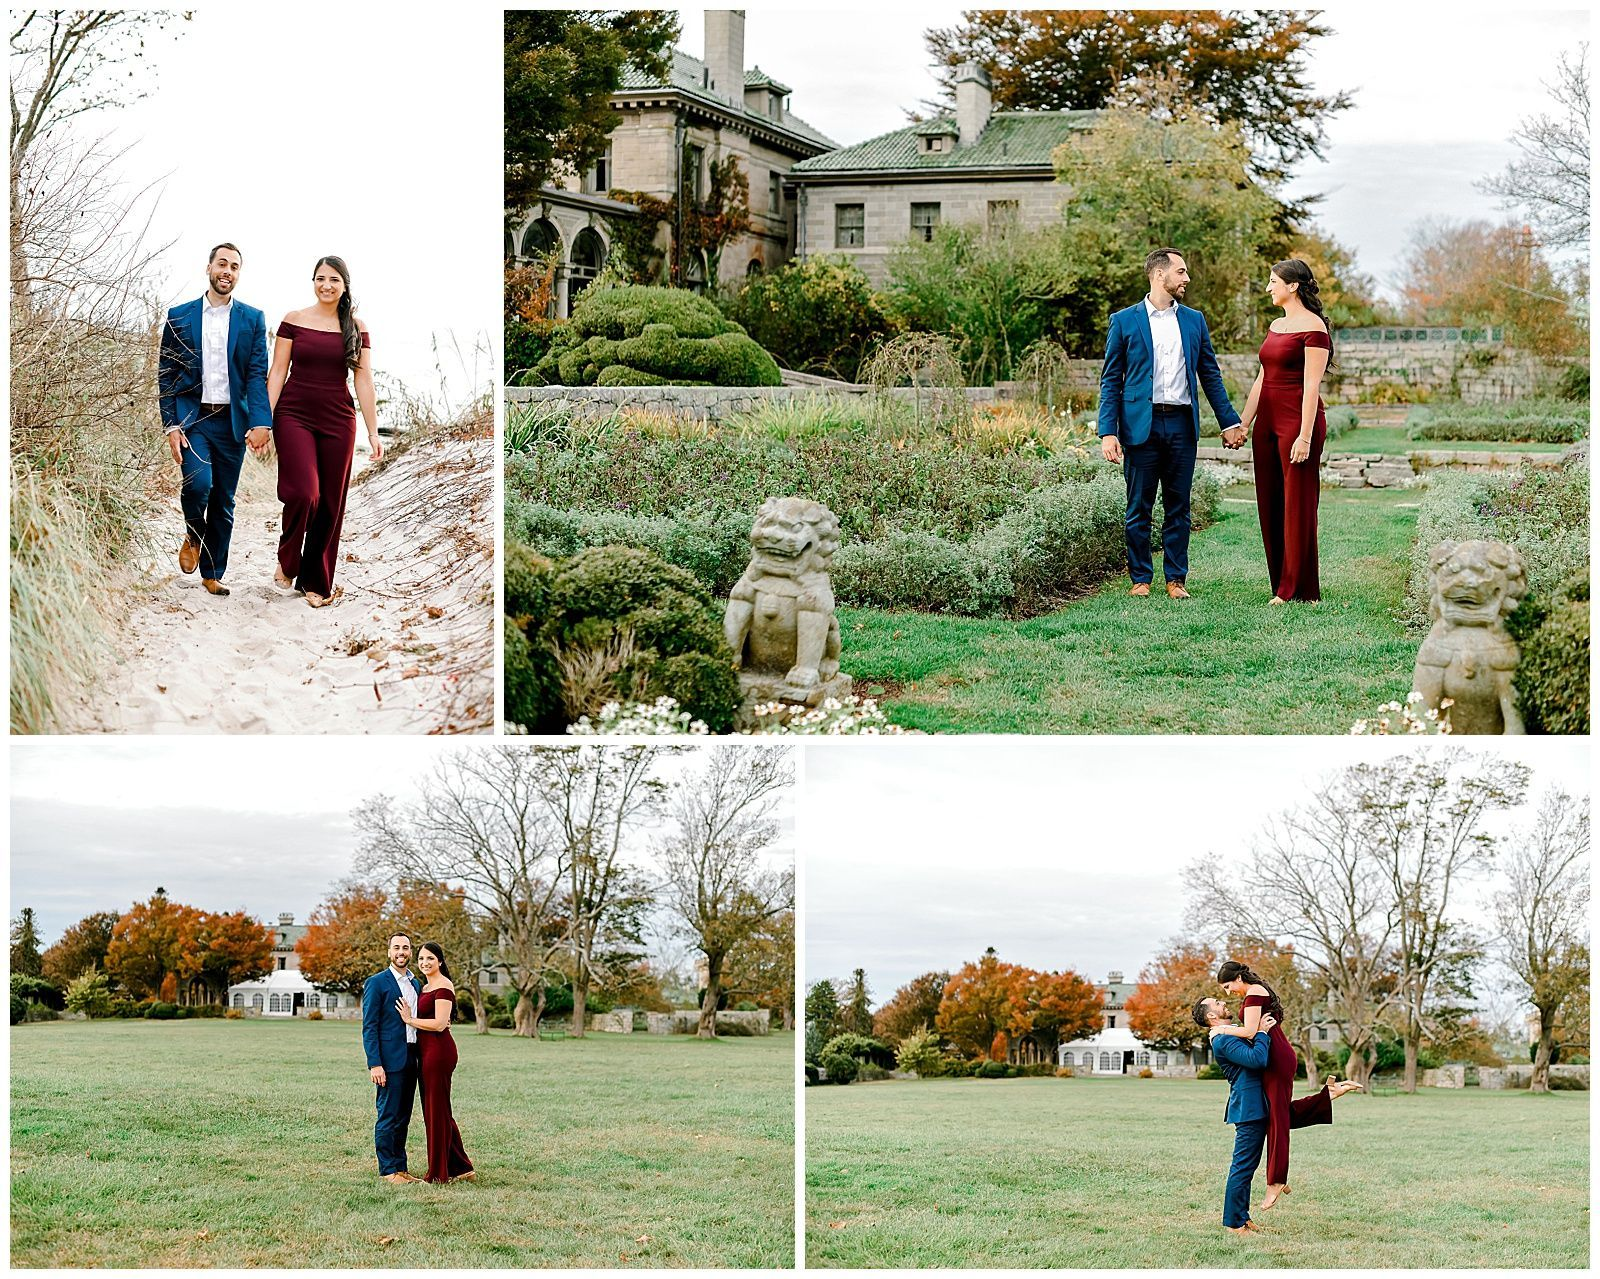 Coastal Fall Engagement Session At A Mansion In Connecticut Harkness Memorial State Park State Parks Coastal Fall Fall Engagement